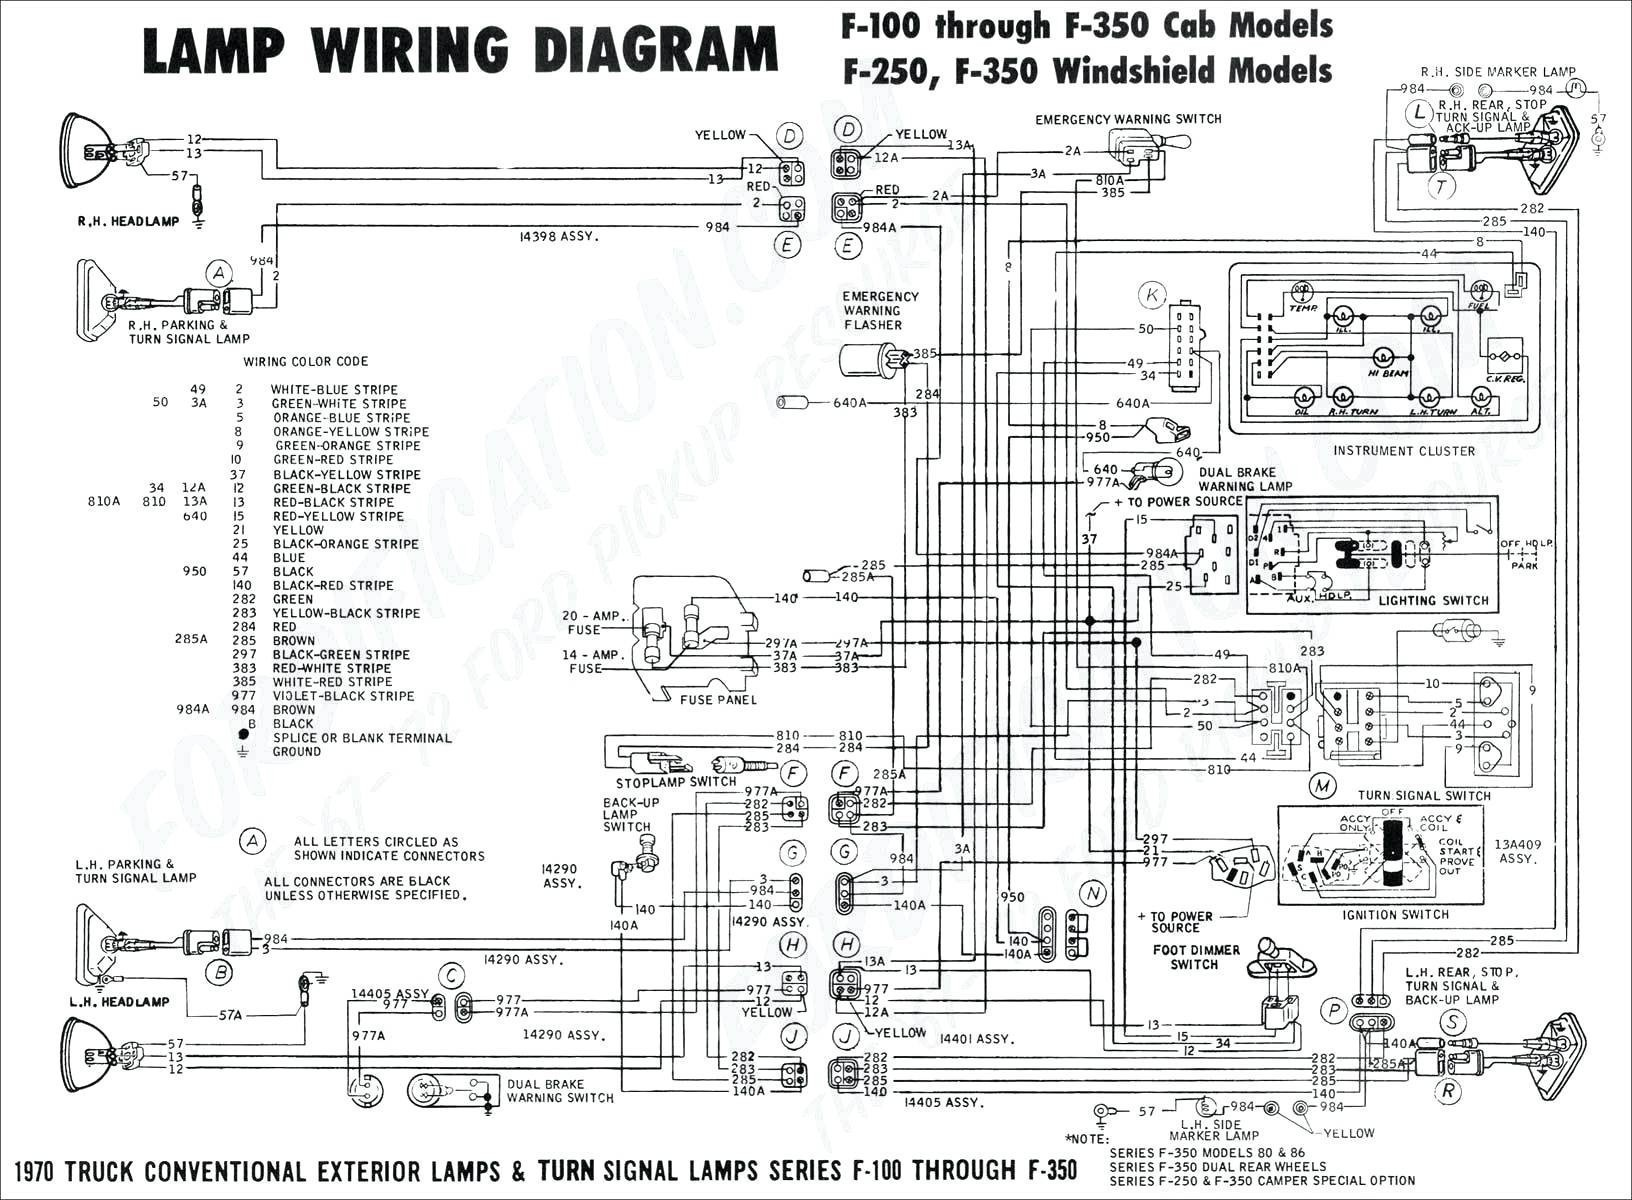 1999 international fuse box wiring diagram